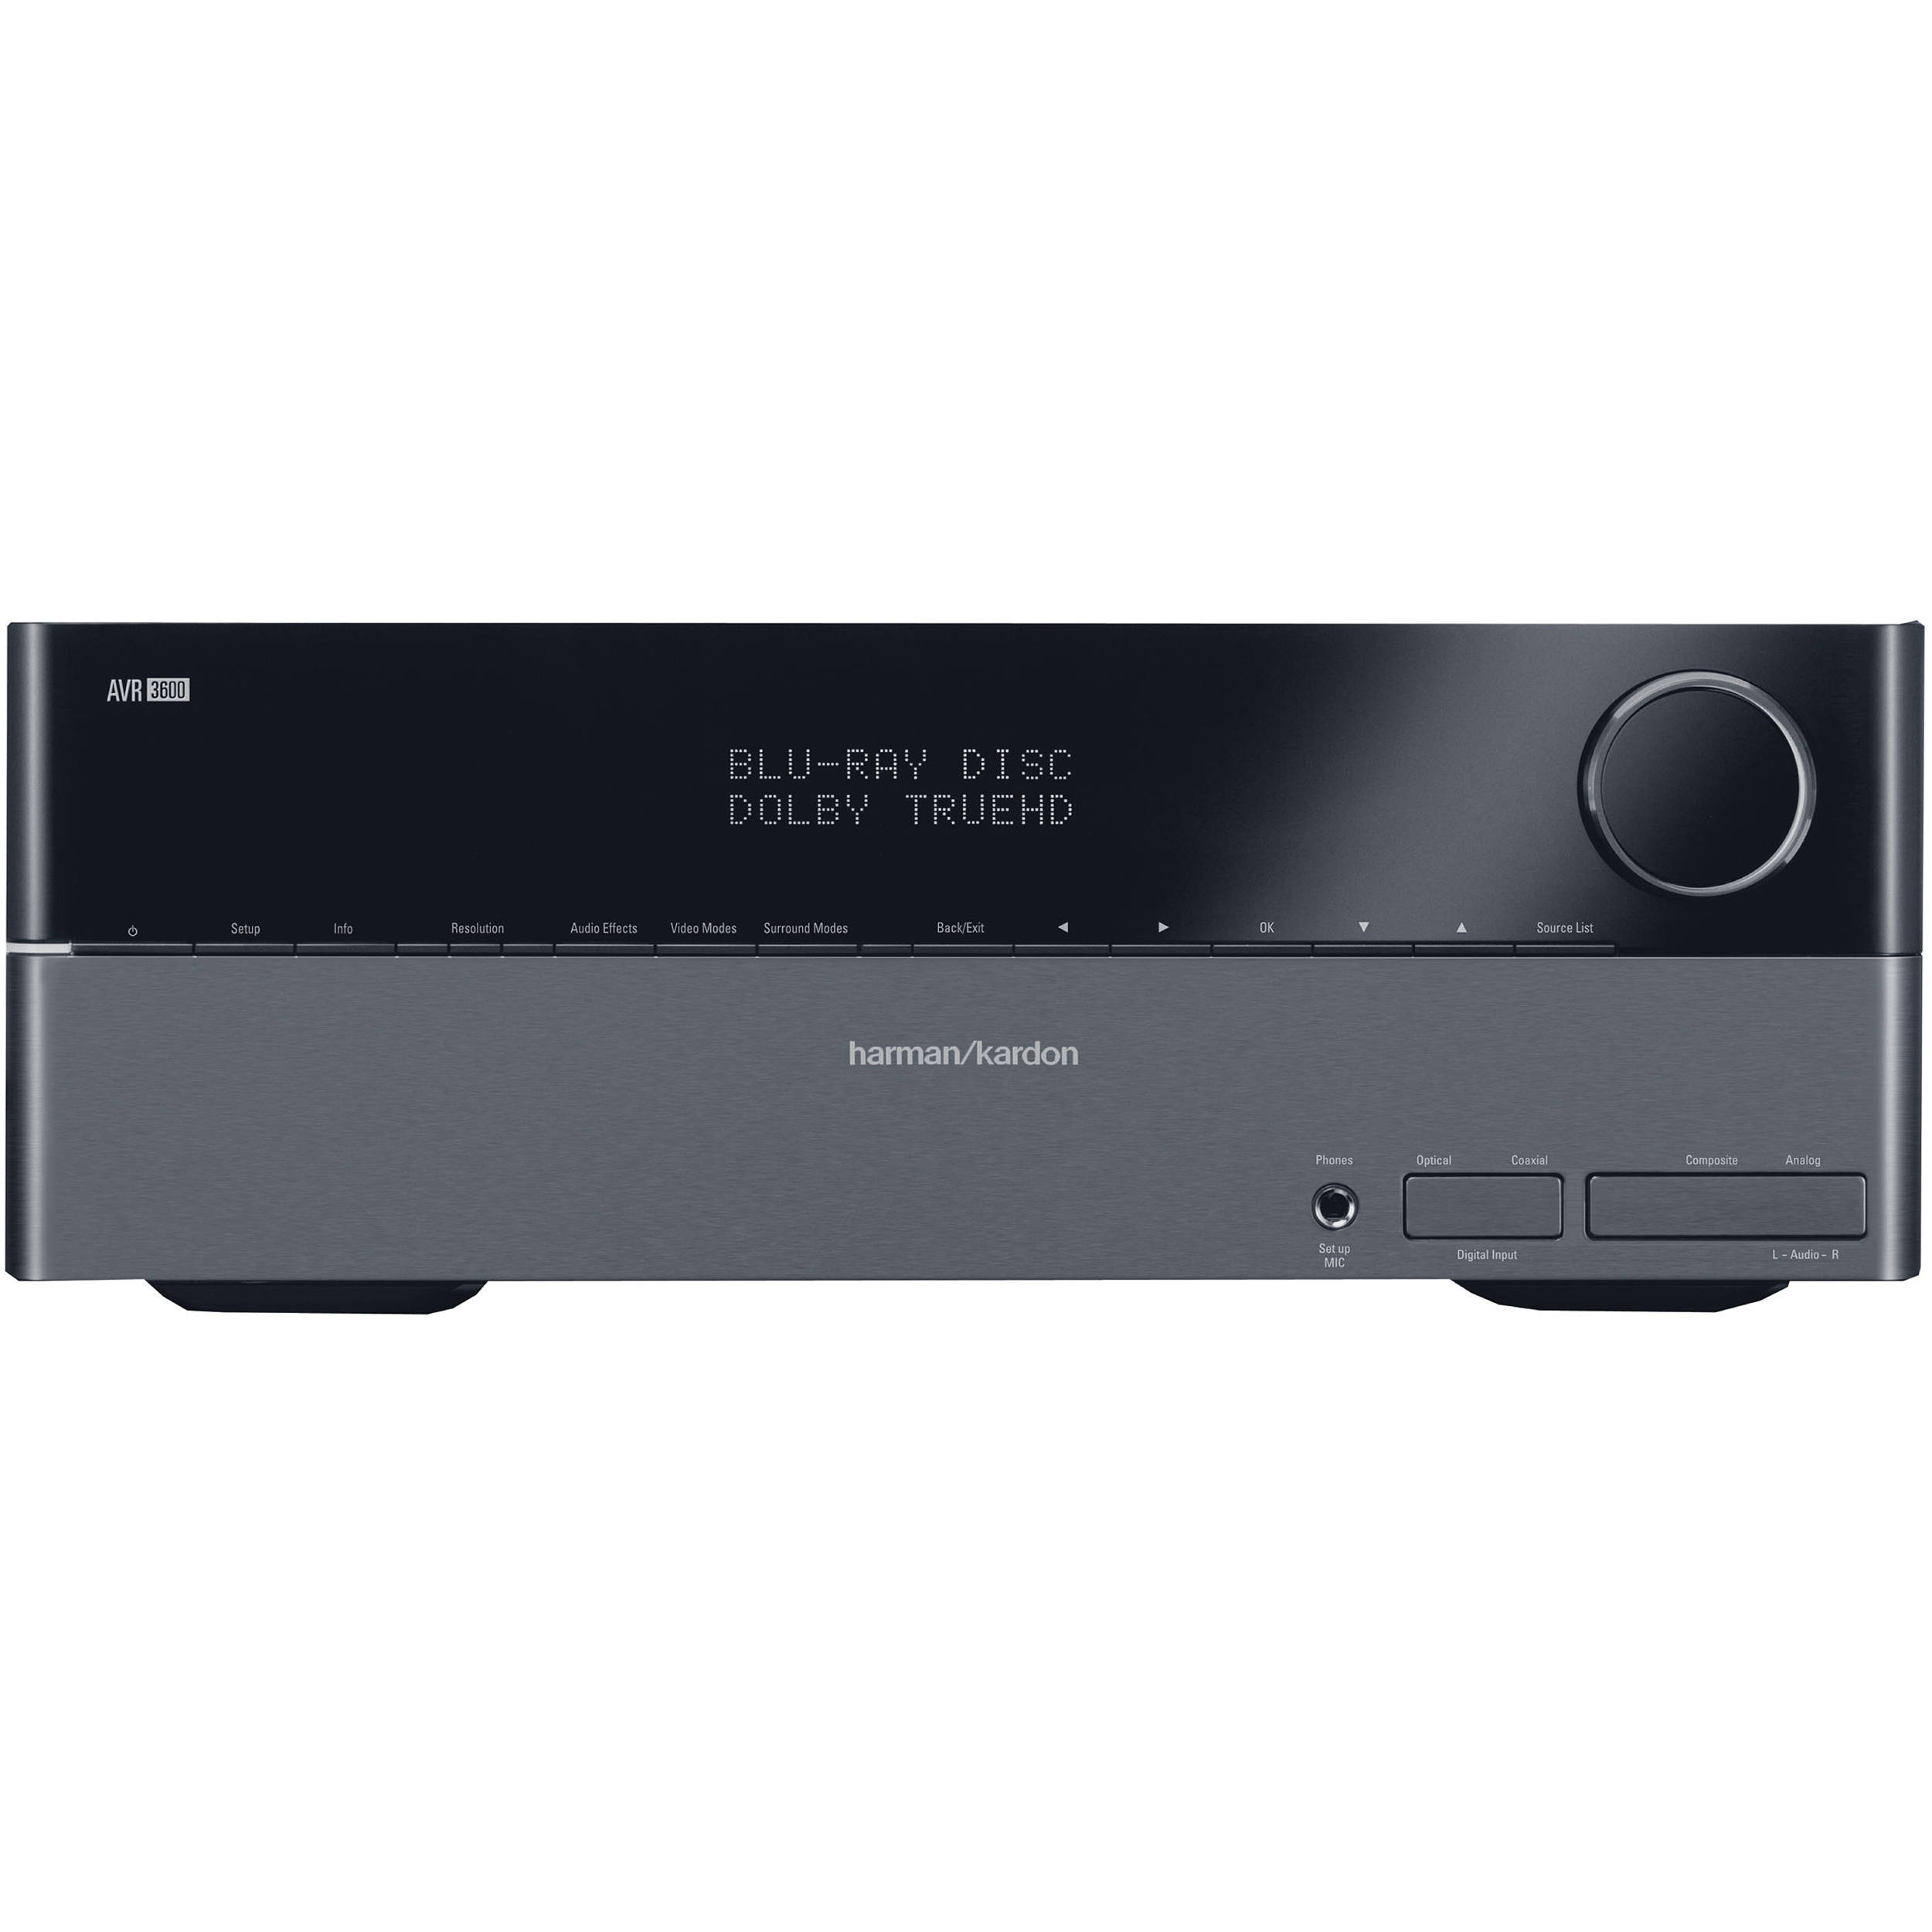 Harman Kardon Avr 3600 71 Channel A V Receiver Avr3600 Bh Download Image Usb Programmer Pc Android Iphone And Ipad